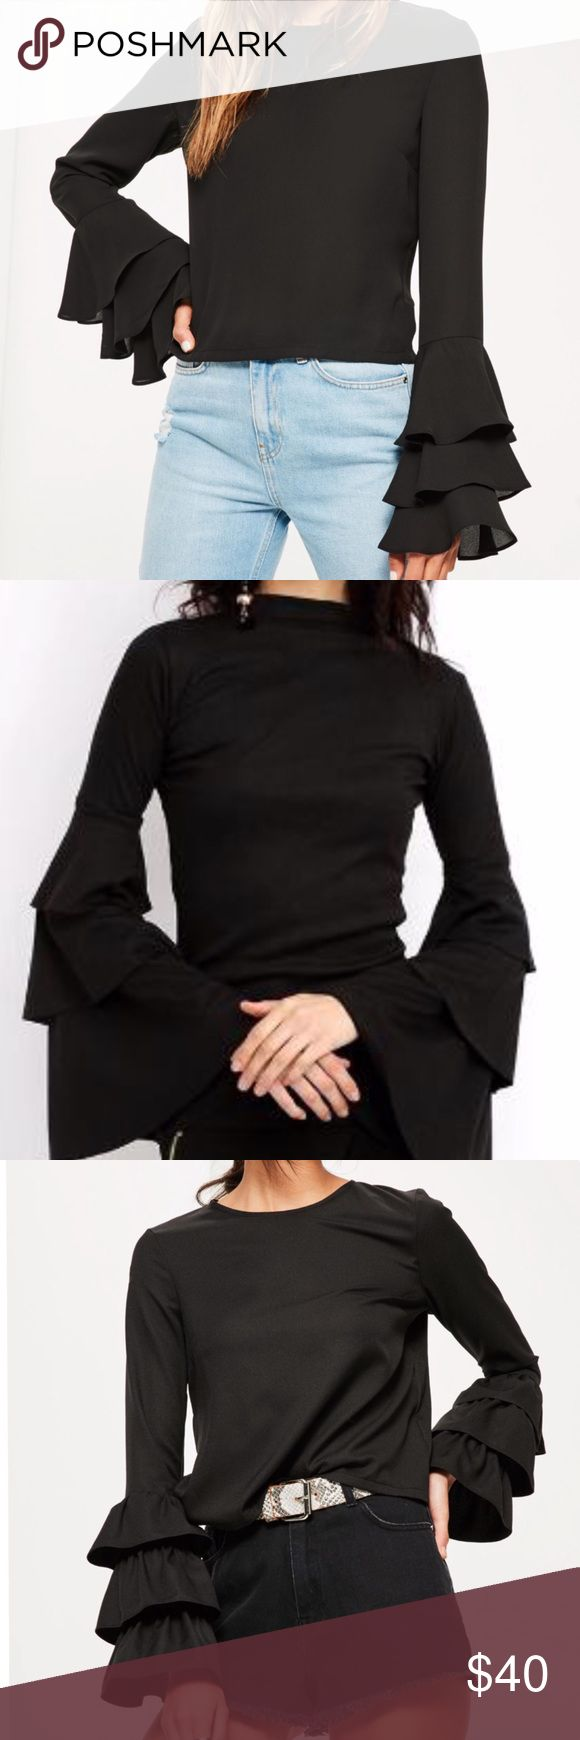 """3layer flare sleeve blouse Gorgeous 3 layer bell sleeve blouse Material: 100%Polyester NWTColor: Black, bell layered Folding Sleeve with Back Key Hole,Simple,Comfortable goes great with everything! PLEASE READ MEASUREMENTS"""" RUNS SMALLER Size Asian L -bust 41"""" sleeve length 22"""" Length 25"""" Size Asian XL - bust 43"""" sleeve length 22"""" Length 26"""" Size Asian 2X - bust 45"""" sleeve length 23"""" Length 26""""   BUNDLE & SAVE 15% ✨TOP RATED SELLER✨ SAME DAY OR NEXT DAY SHIPPING! ❤REASONABLE OFFERS WELCOME❤…"""